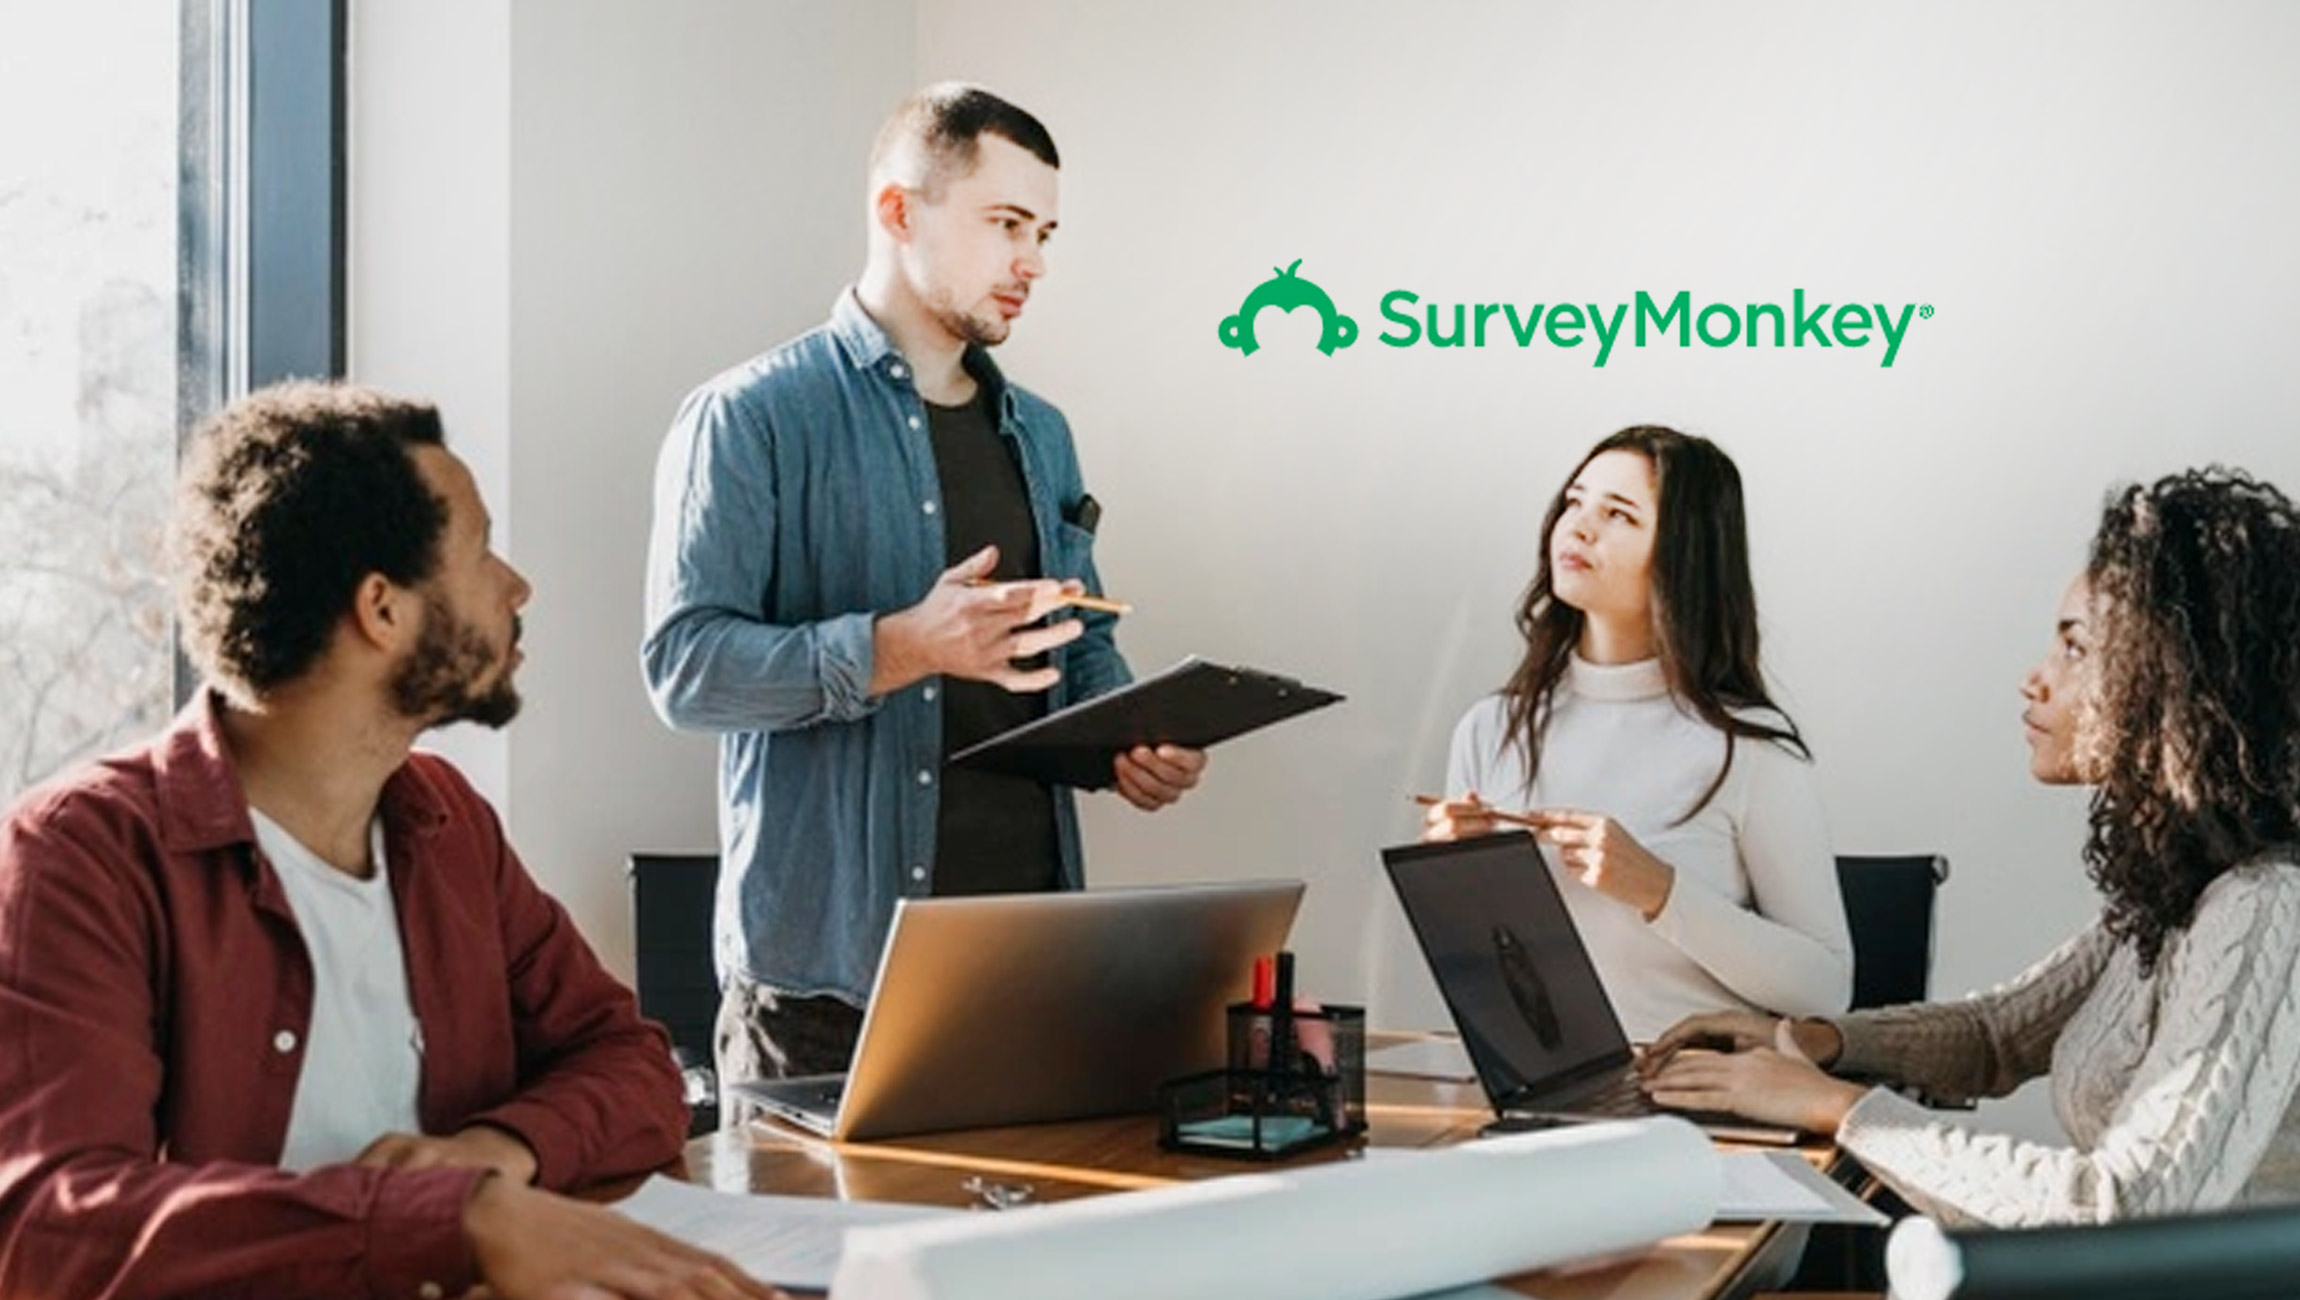 SurveyMonkey Announces Executive Change